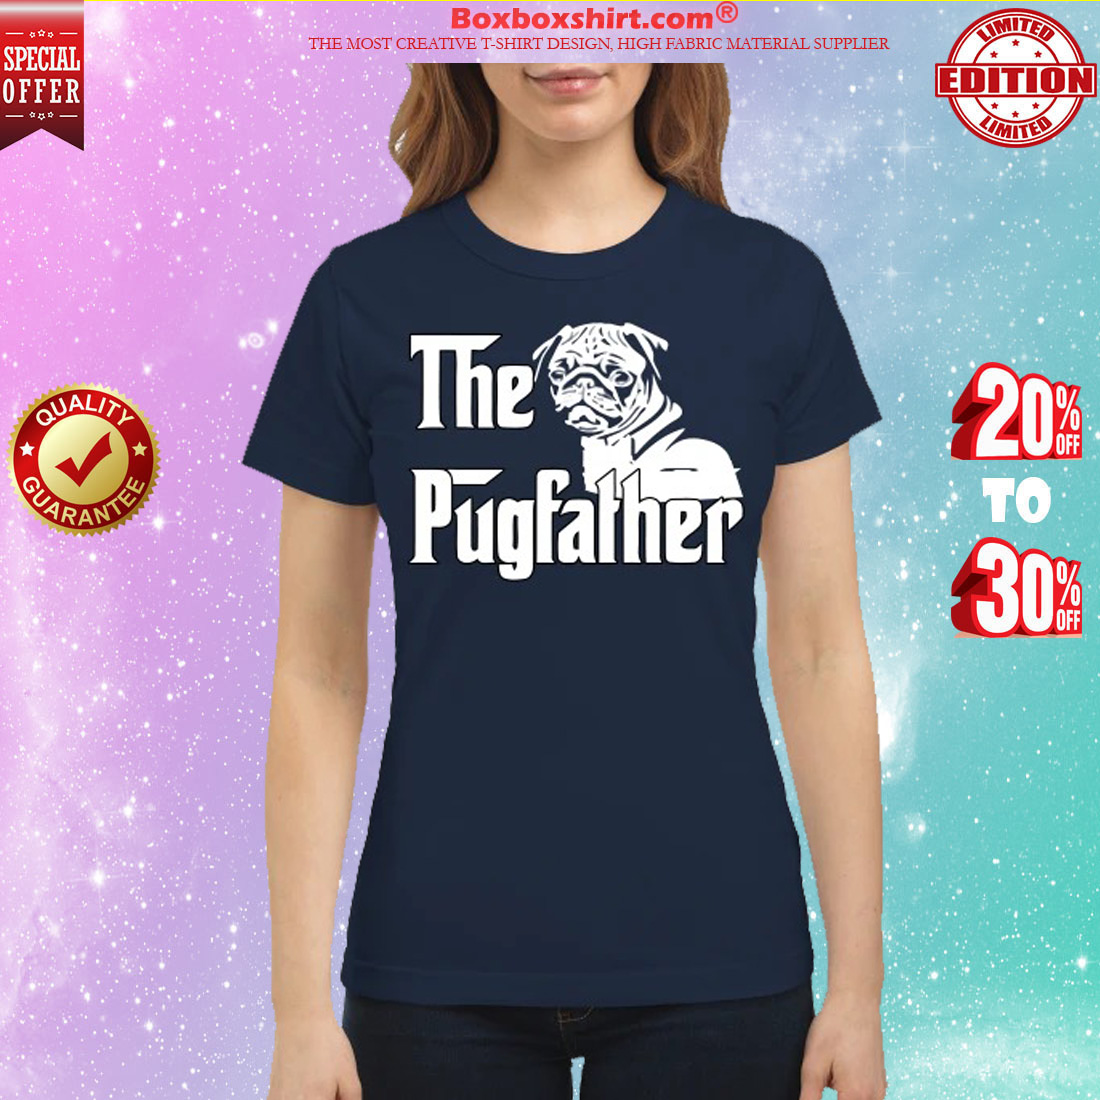 The pugfather classic shirt